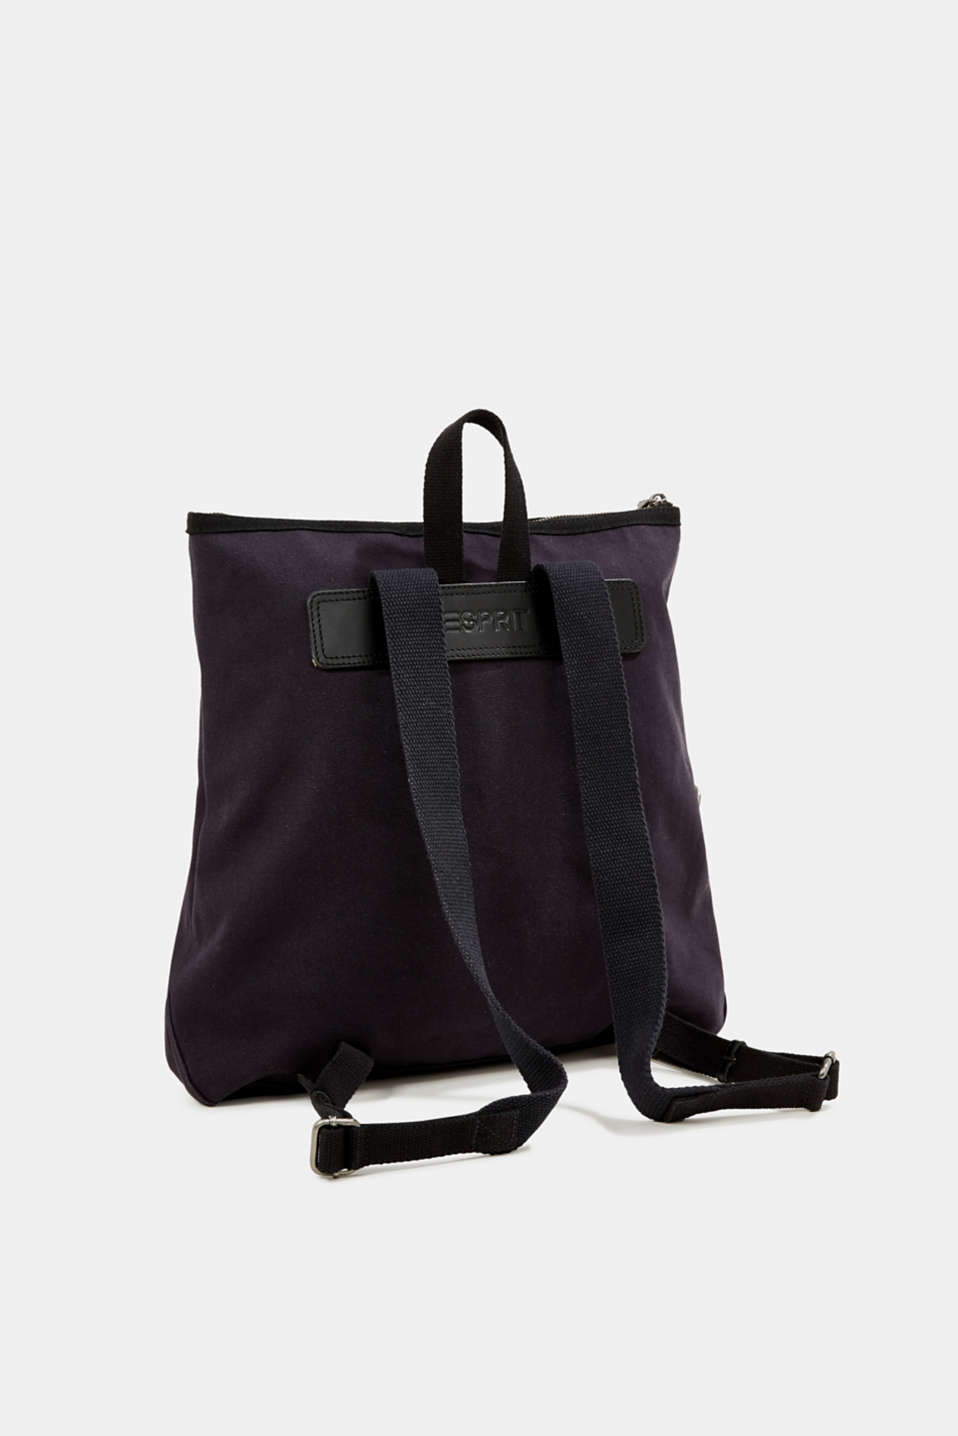 Rucksack with leather details, canvas, NAVY, detail image number 5